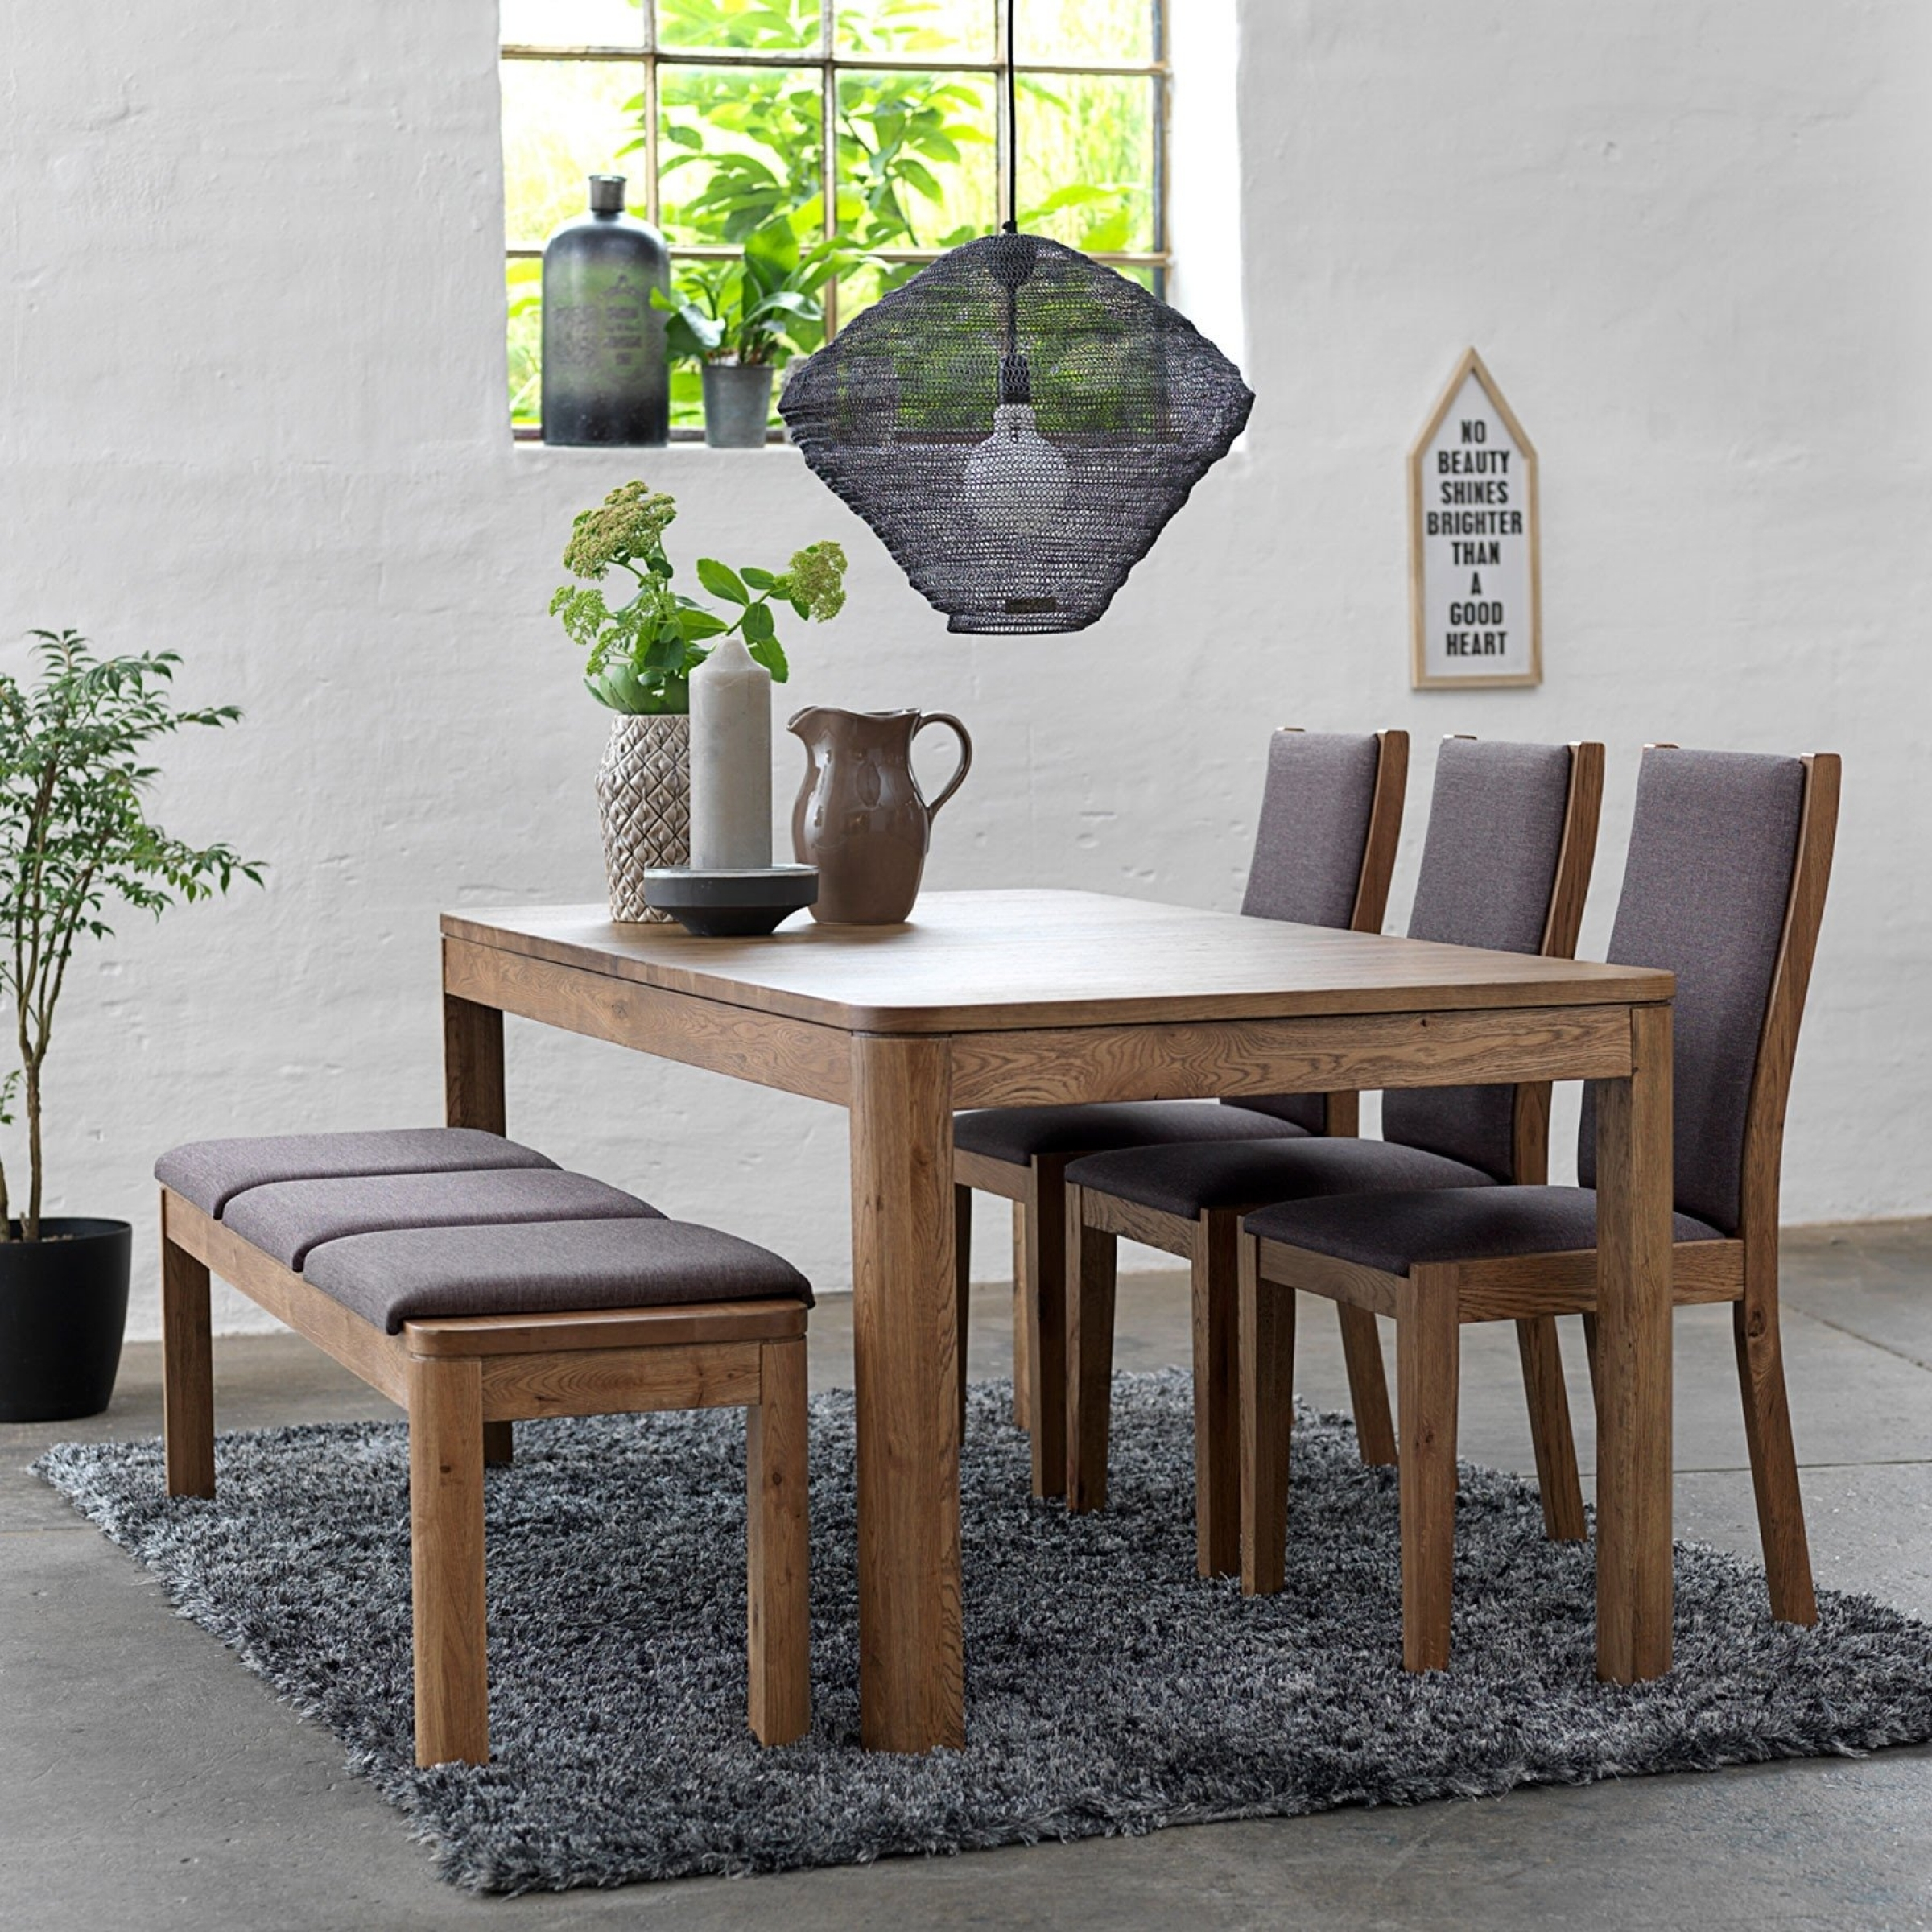 Dining Table With Two Chairs: 50+ Dining Table With Bench You'll Love In 2020